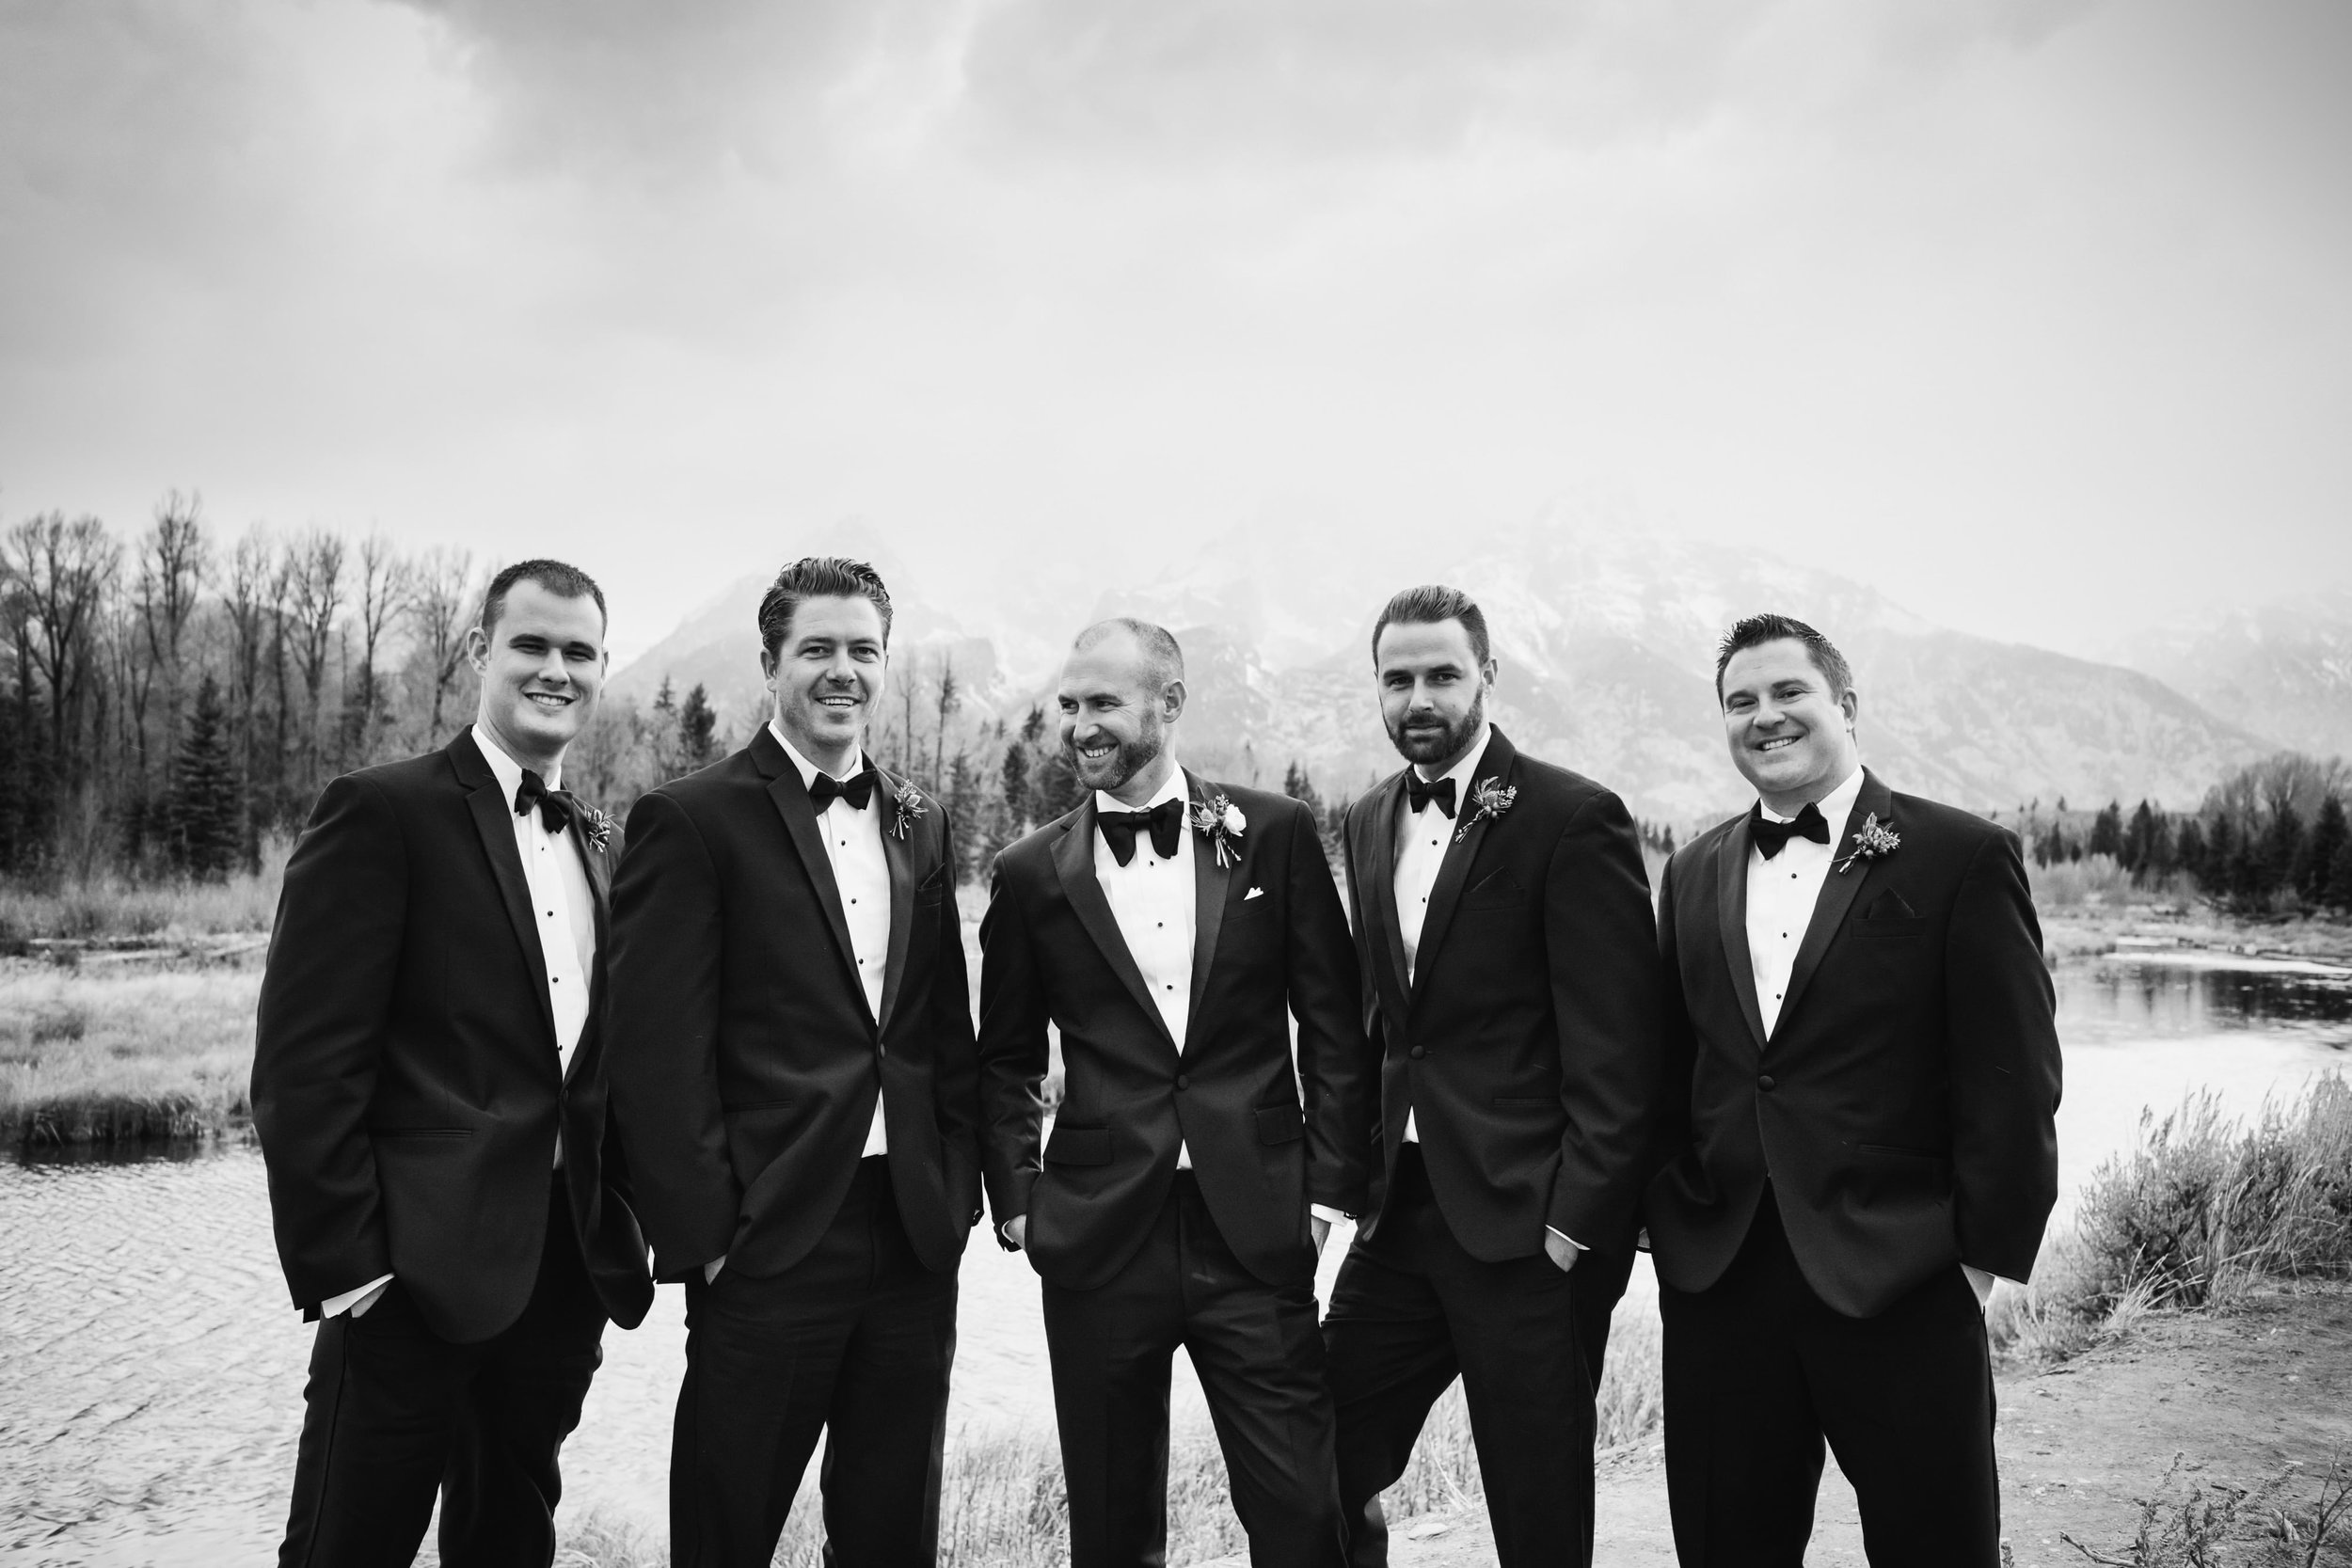 13 Richie and his groomsmen in Menguin tuxes